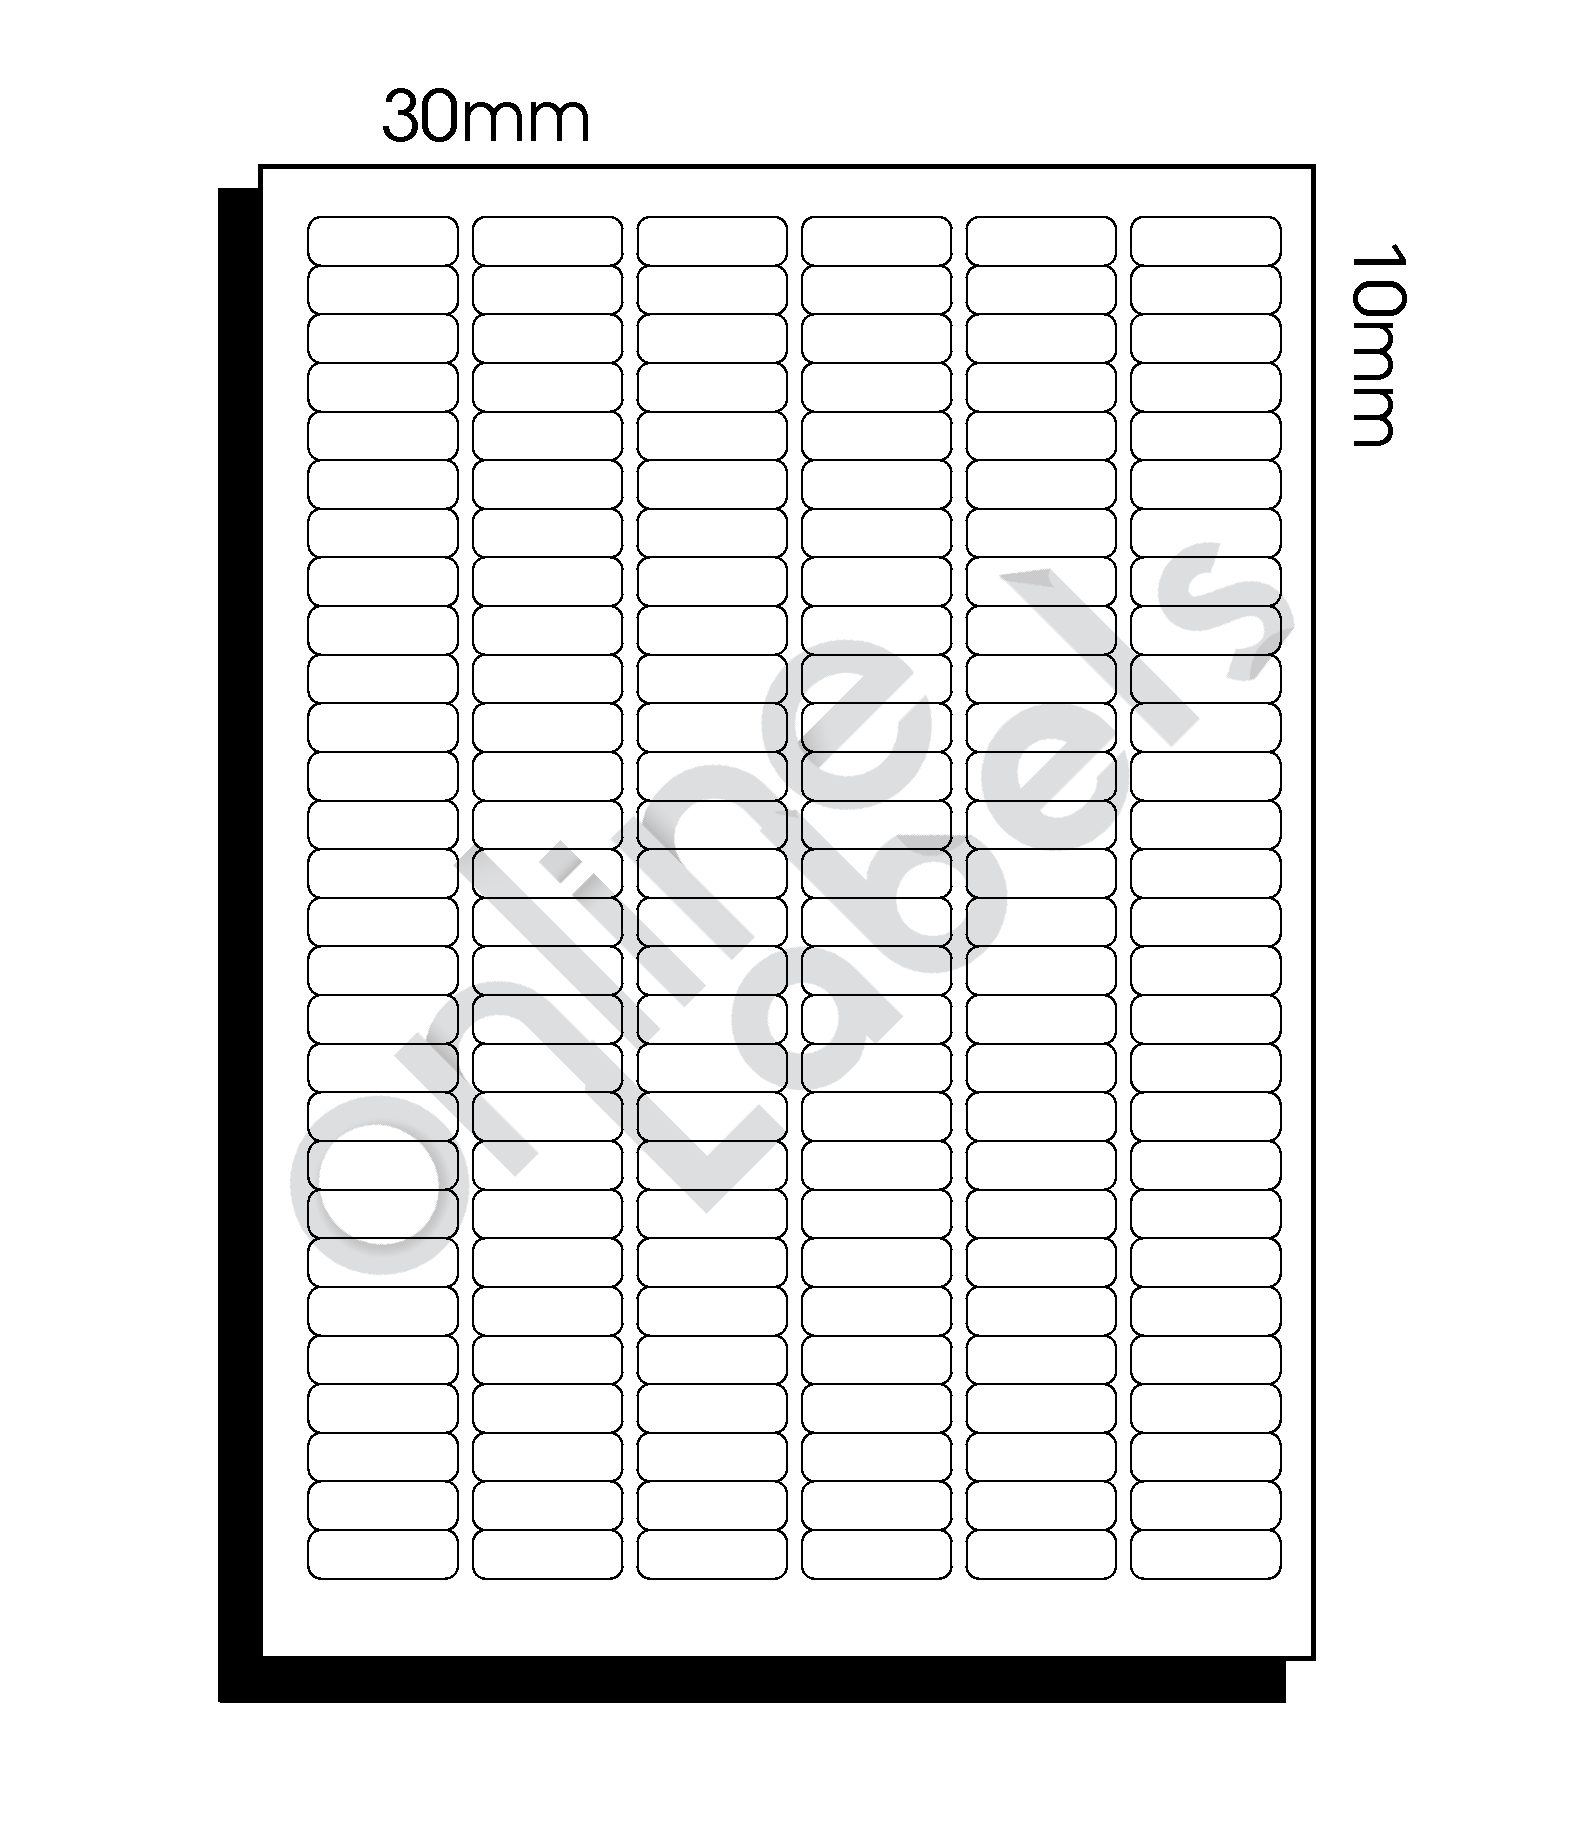 30mm x 10mm (148) – 168 Labels per Sheet